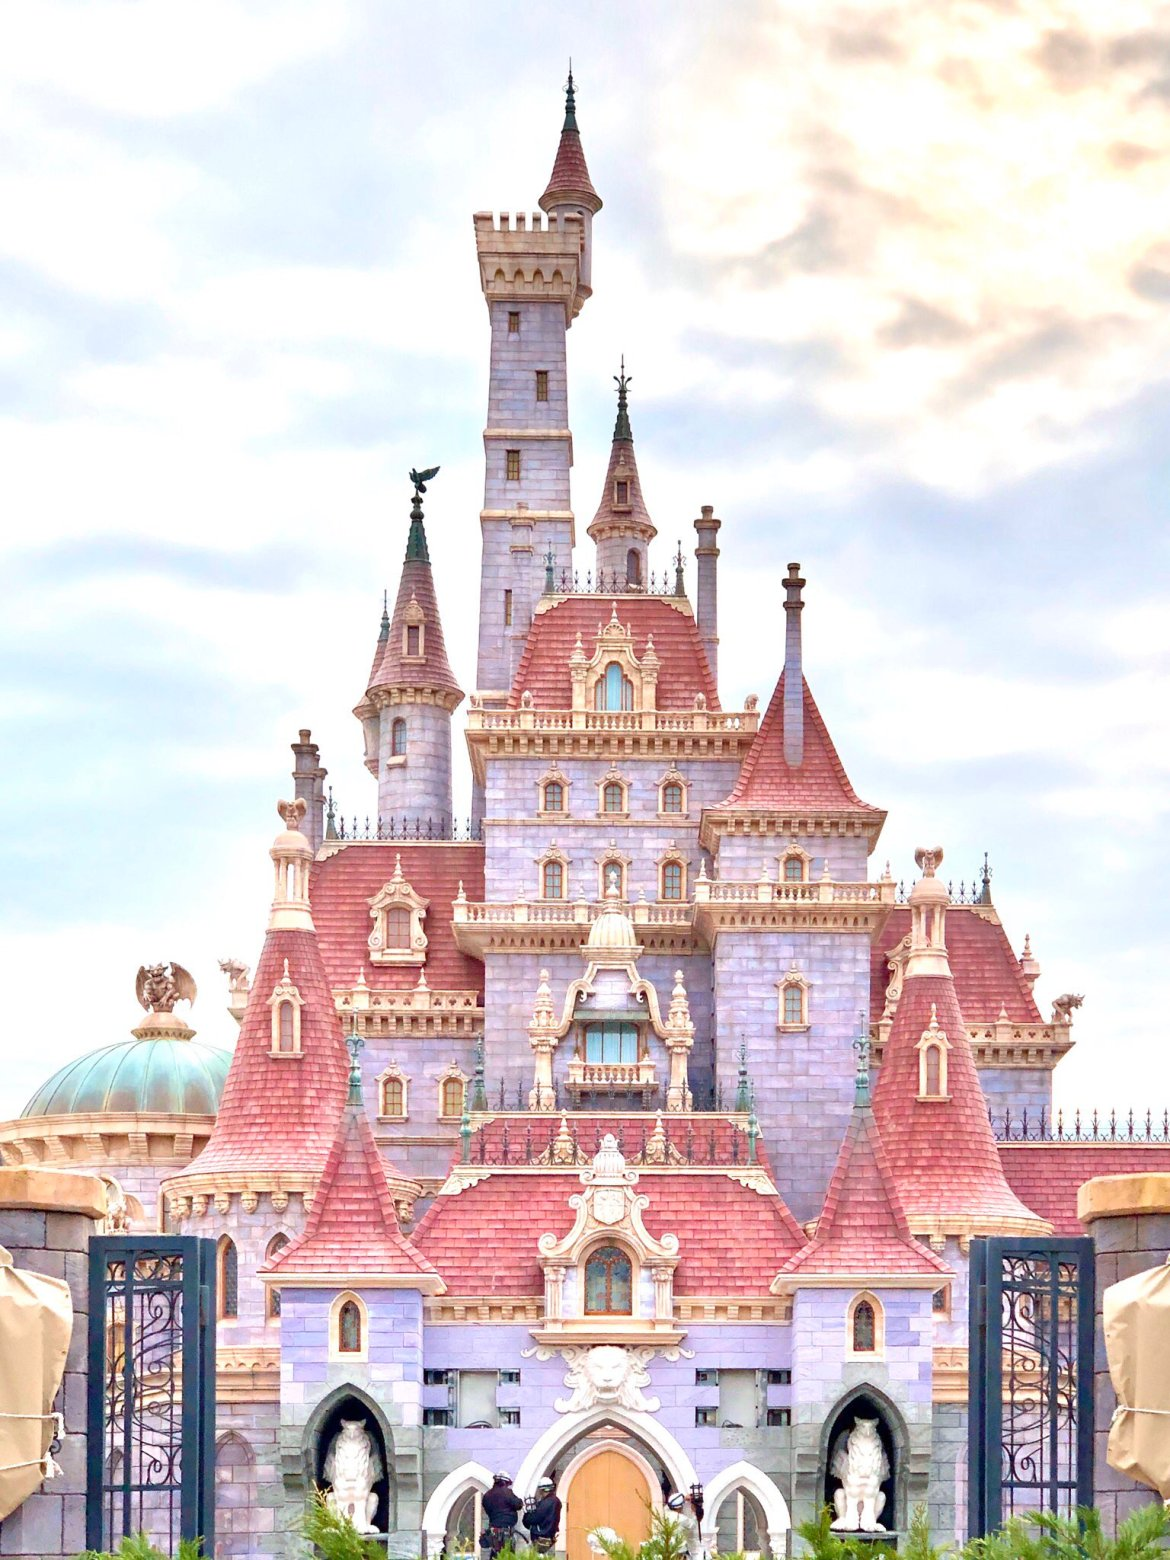 First Look at Beauty and the Beast Castle at Tokyo Disneyland